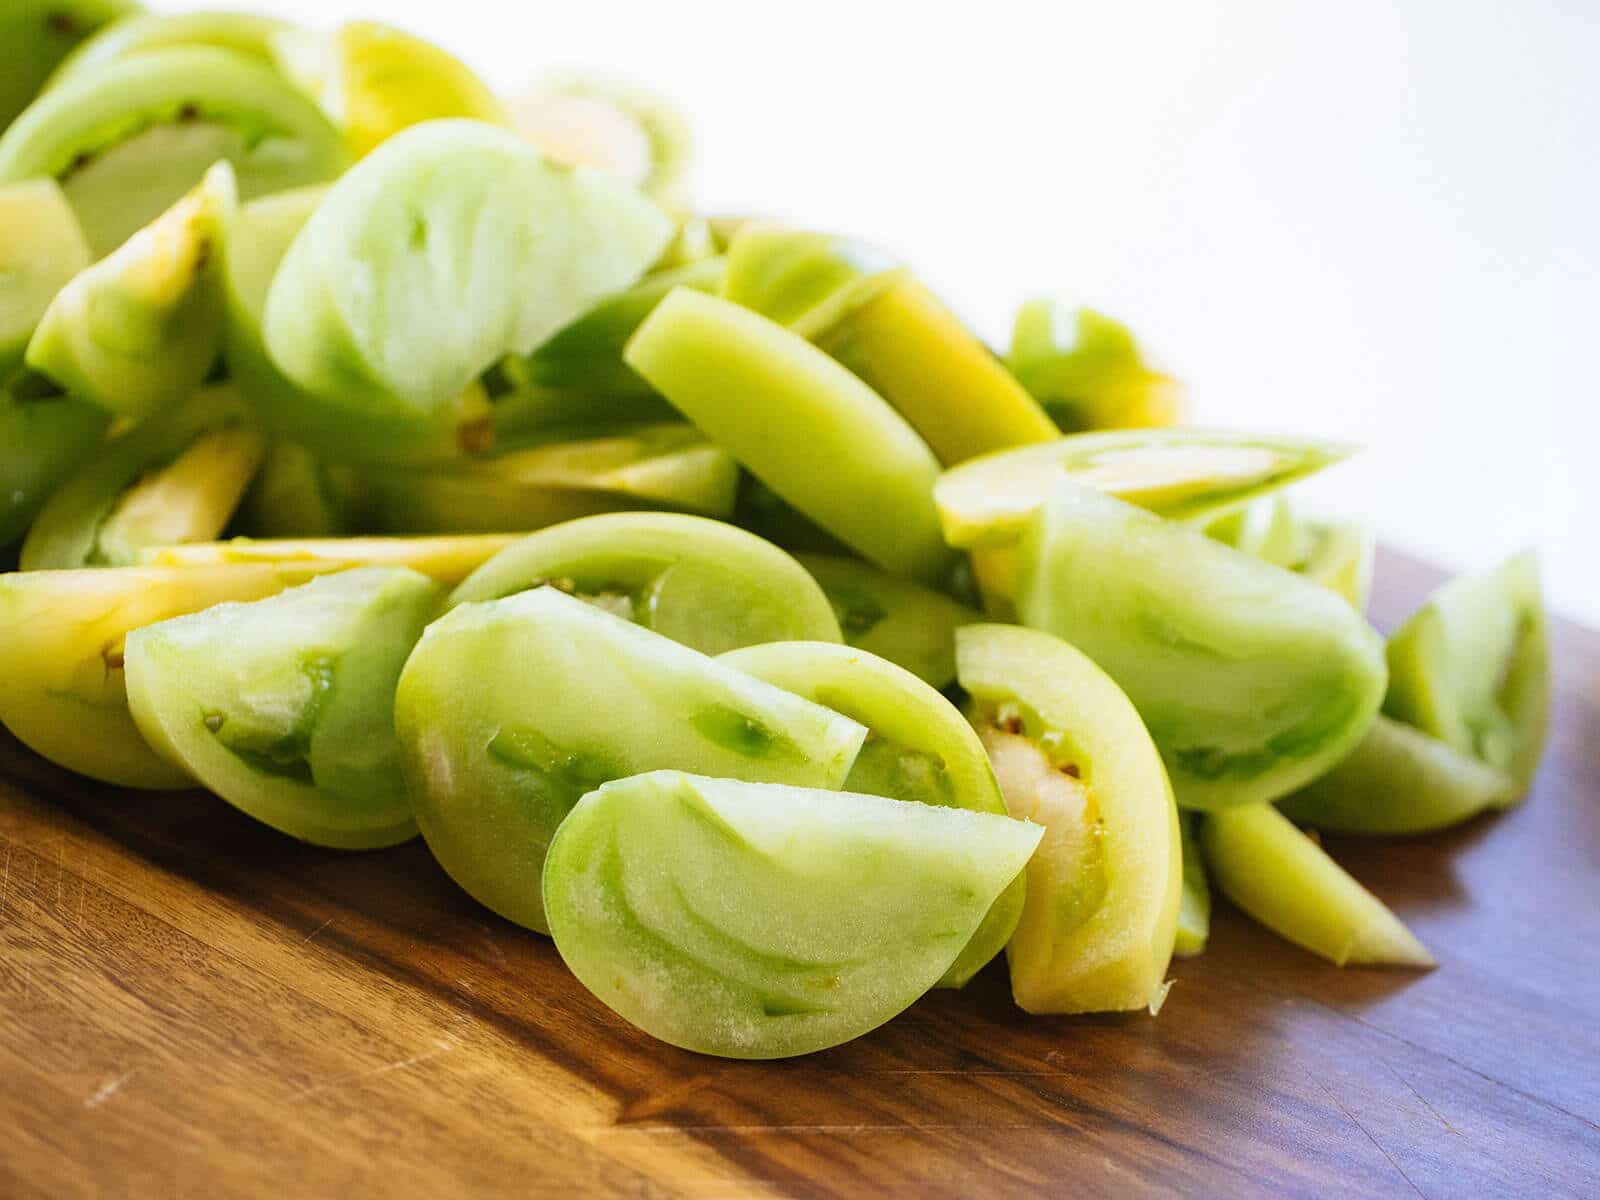 Sliced green tomatoes on a cutting board